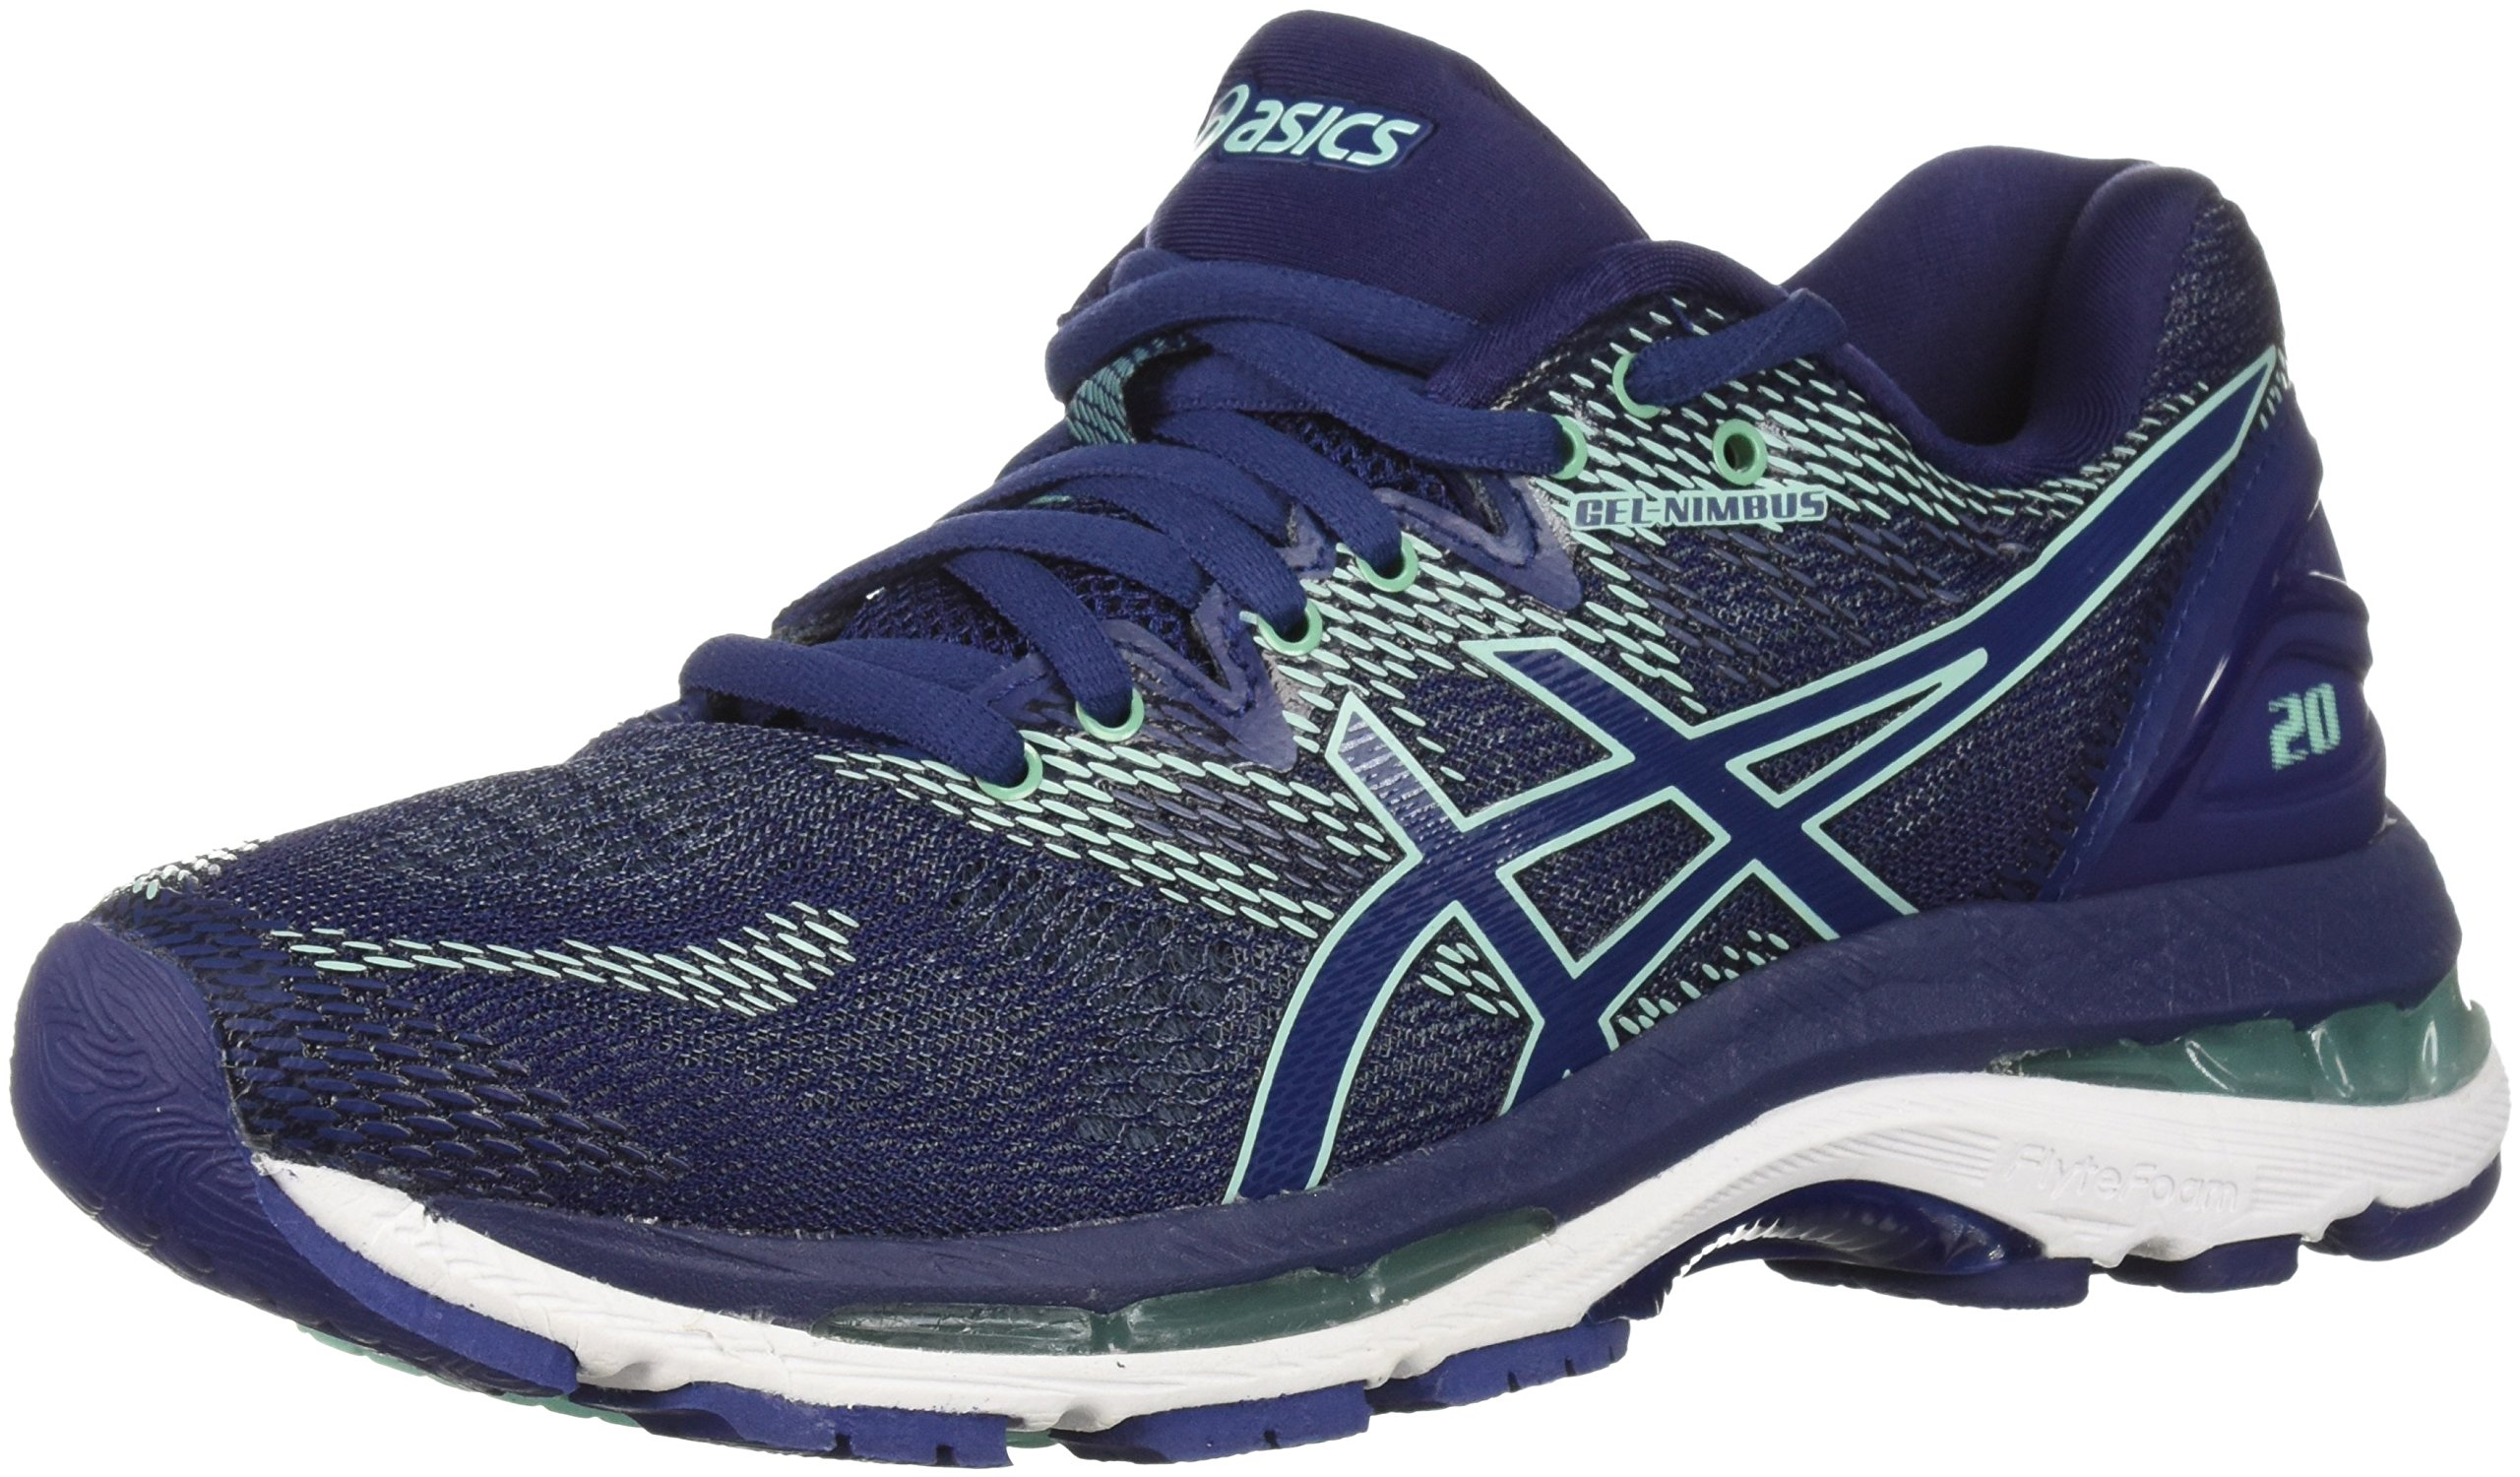 ASICS Women's Gel-Nimbus 20 Running Shoe, indigo blue/indigo blue/opal green, 12 D US by ASICS (Image #1)